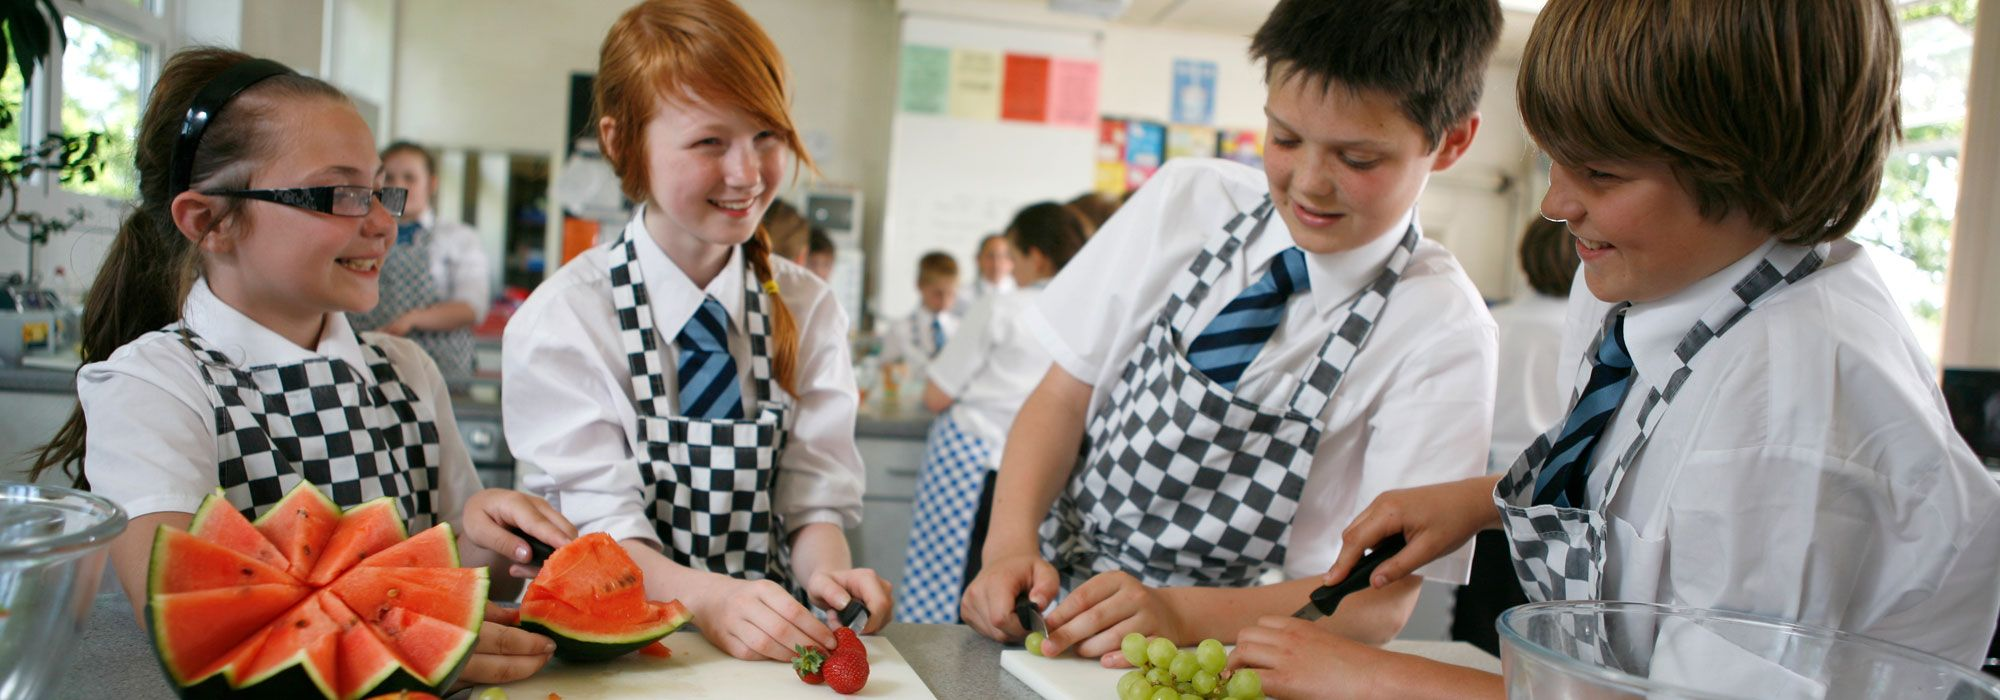 Pupils in home economics class